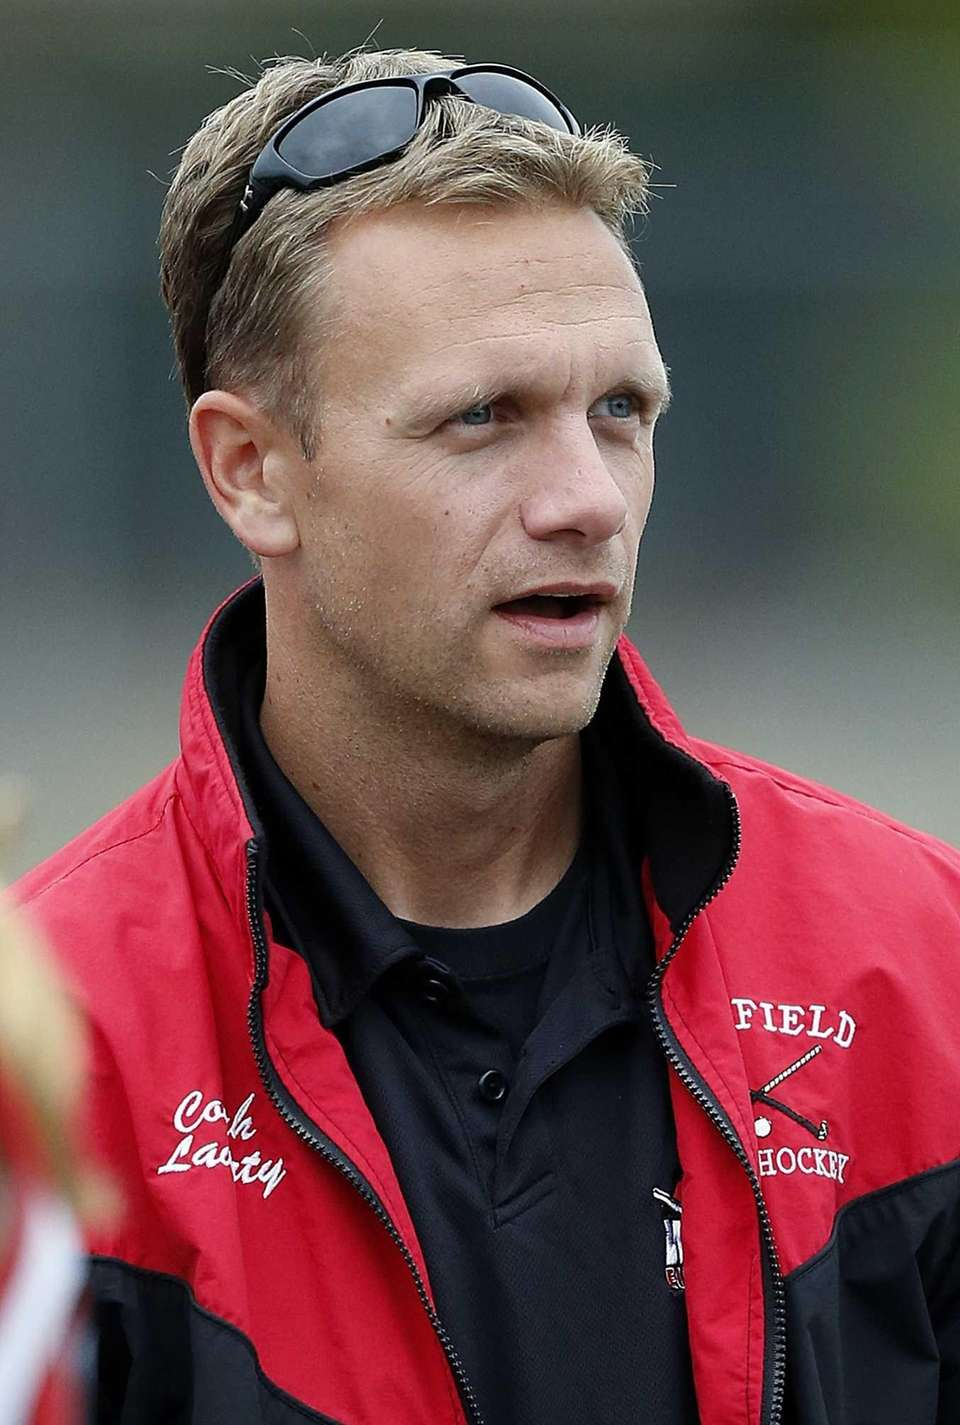 Newfield field hockey head coach Marty Laverty. (Oct.